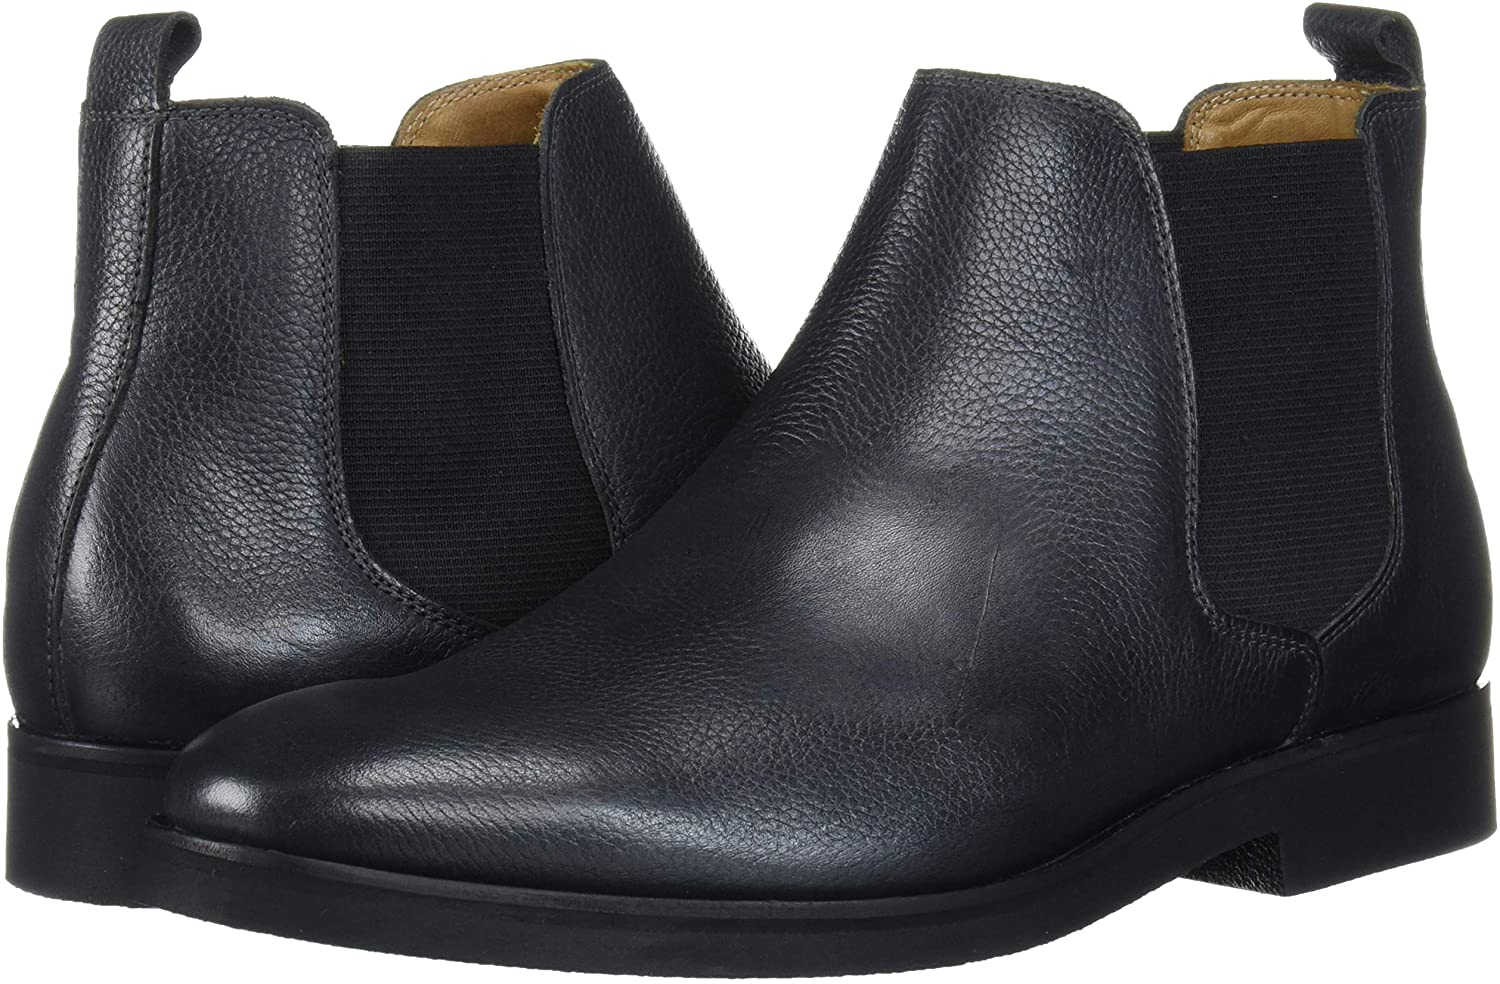 thumbnail 27 - Driver Club USA Men's Shoes Geuine Leather Leather Closed Toe Ankle Fashion